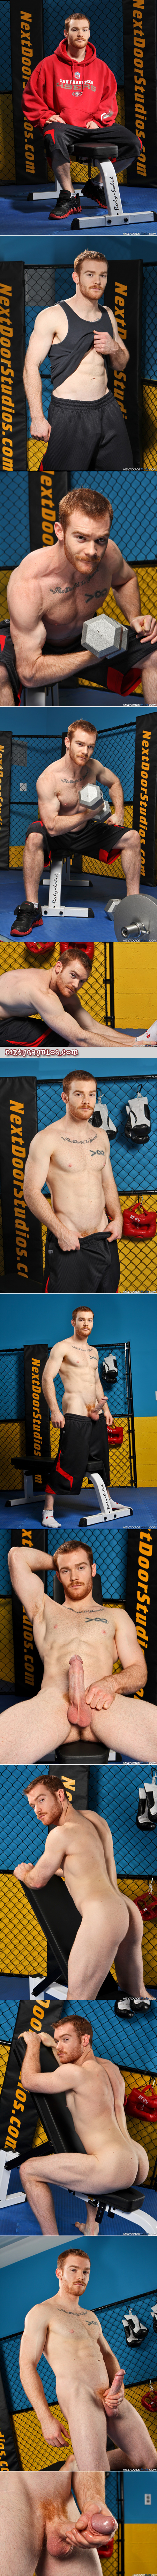 Ripped, muscular redhead in athletic gear masturbating after his workout.